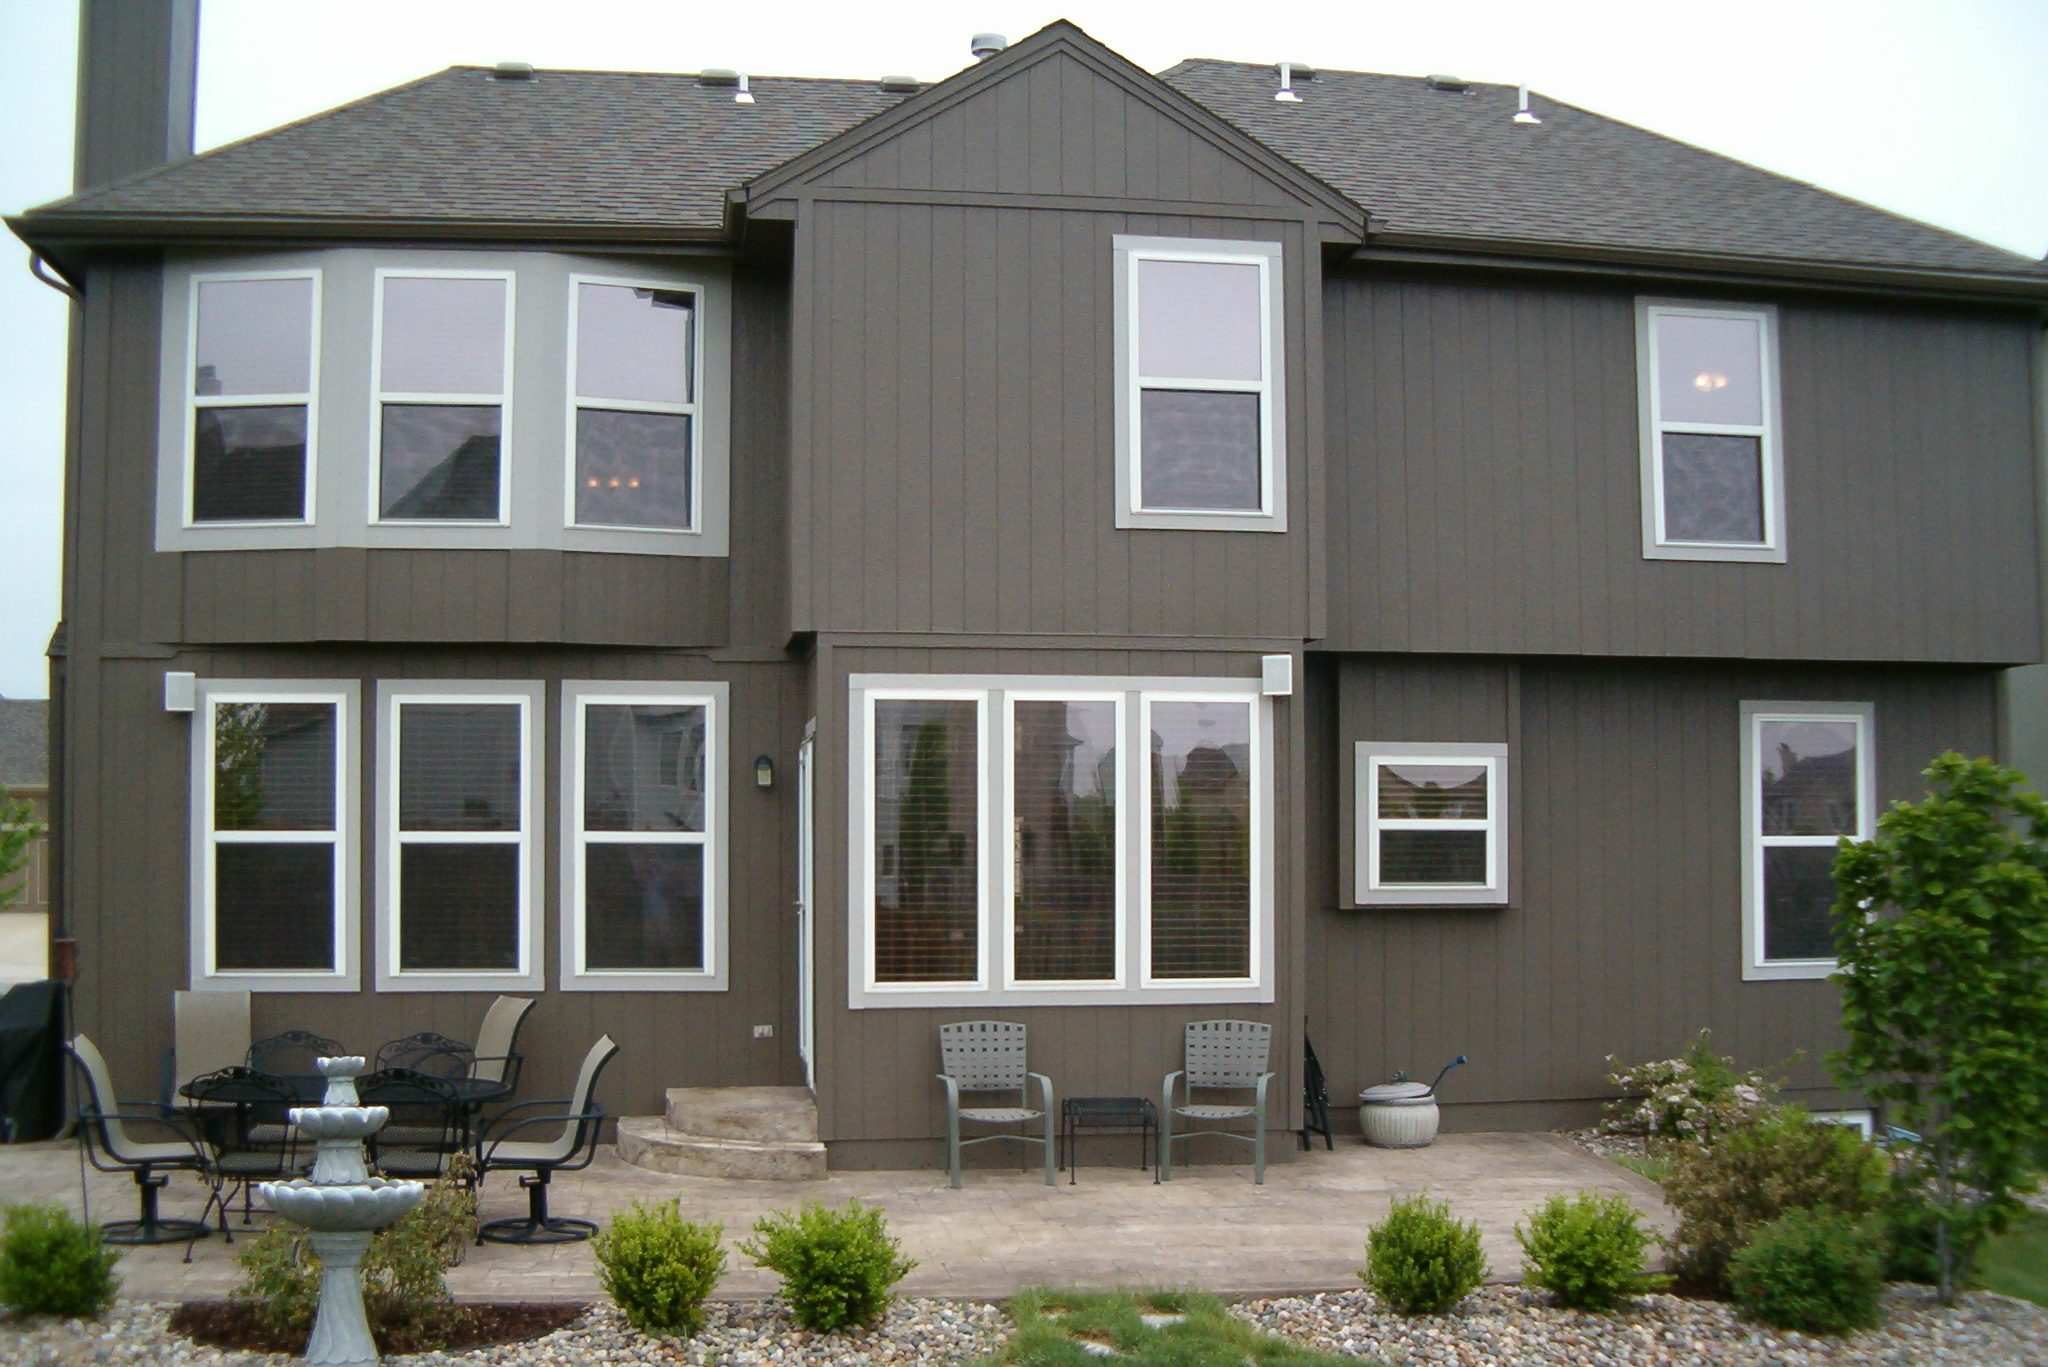 Window tint service kansas city midwest tinting for Windows for residential homes